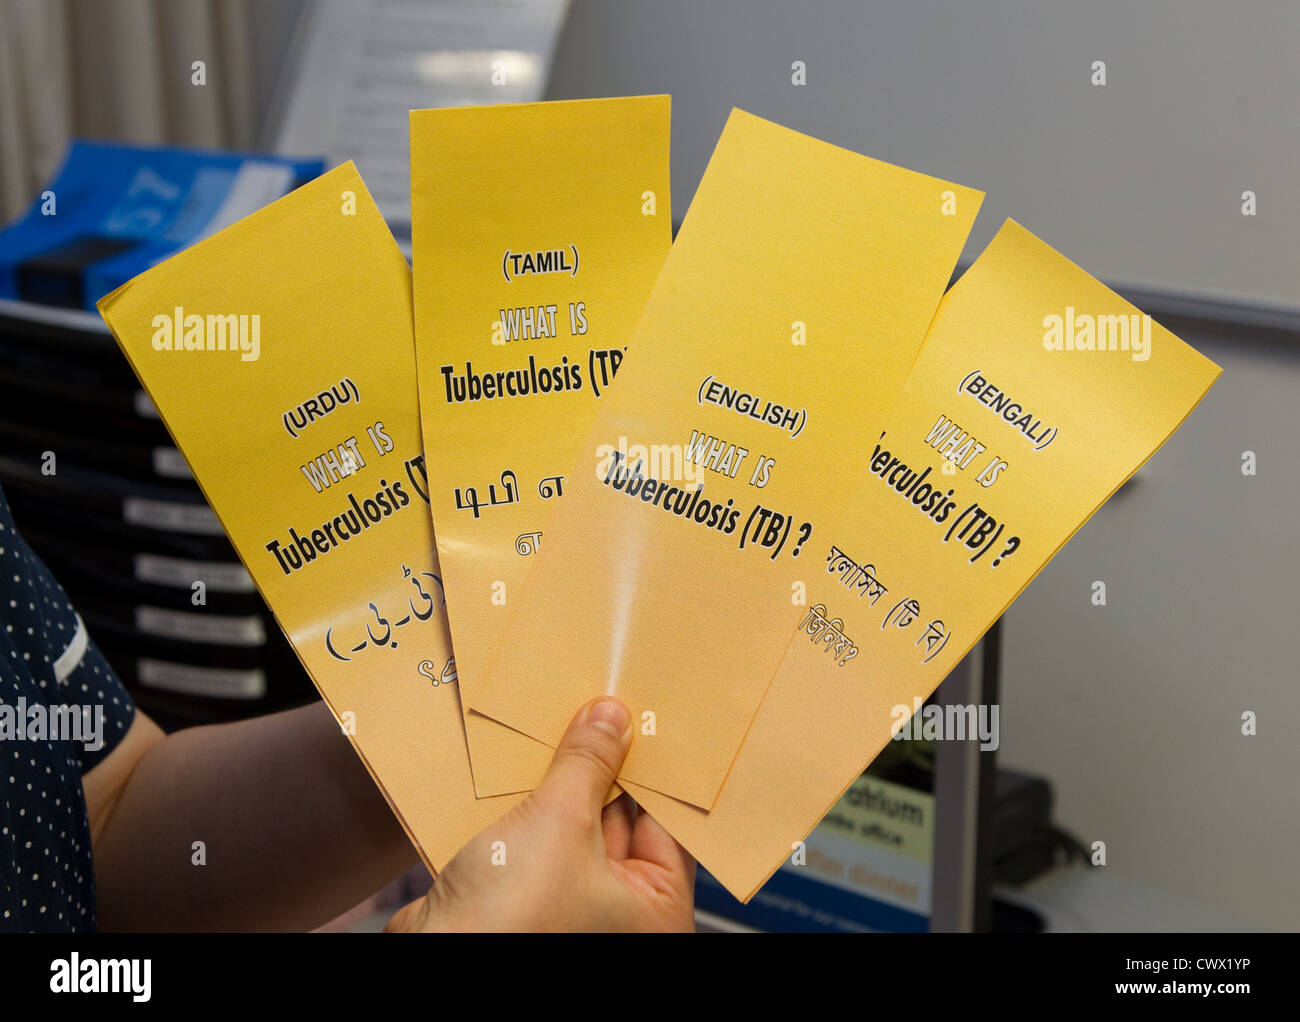 Tuberculosis leaflets in different languages - Stock Image